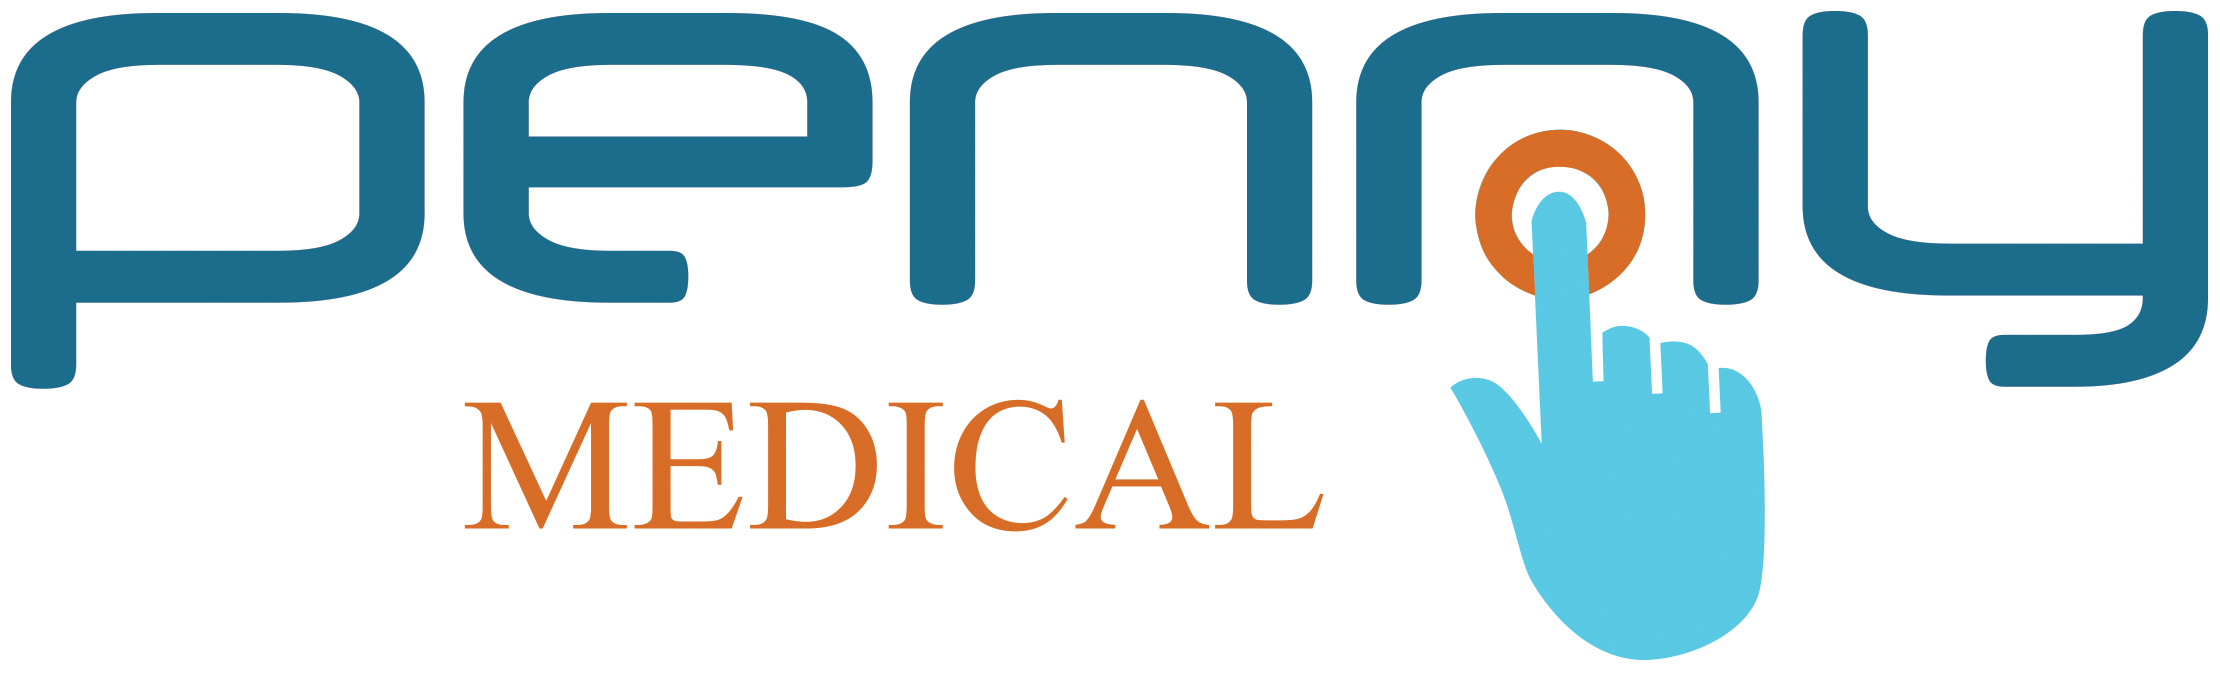 penny medical master logo final large (1).jpg